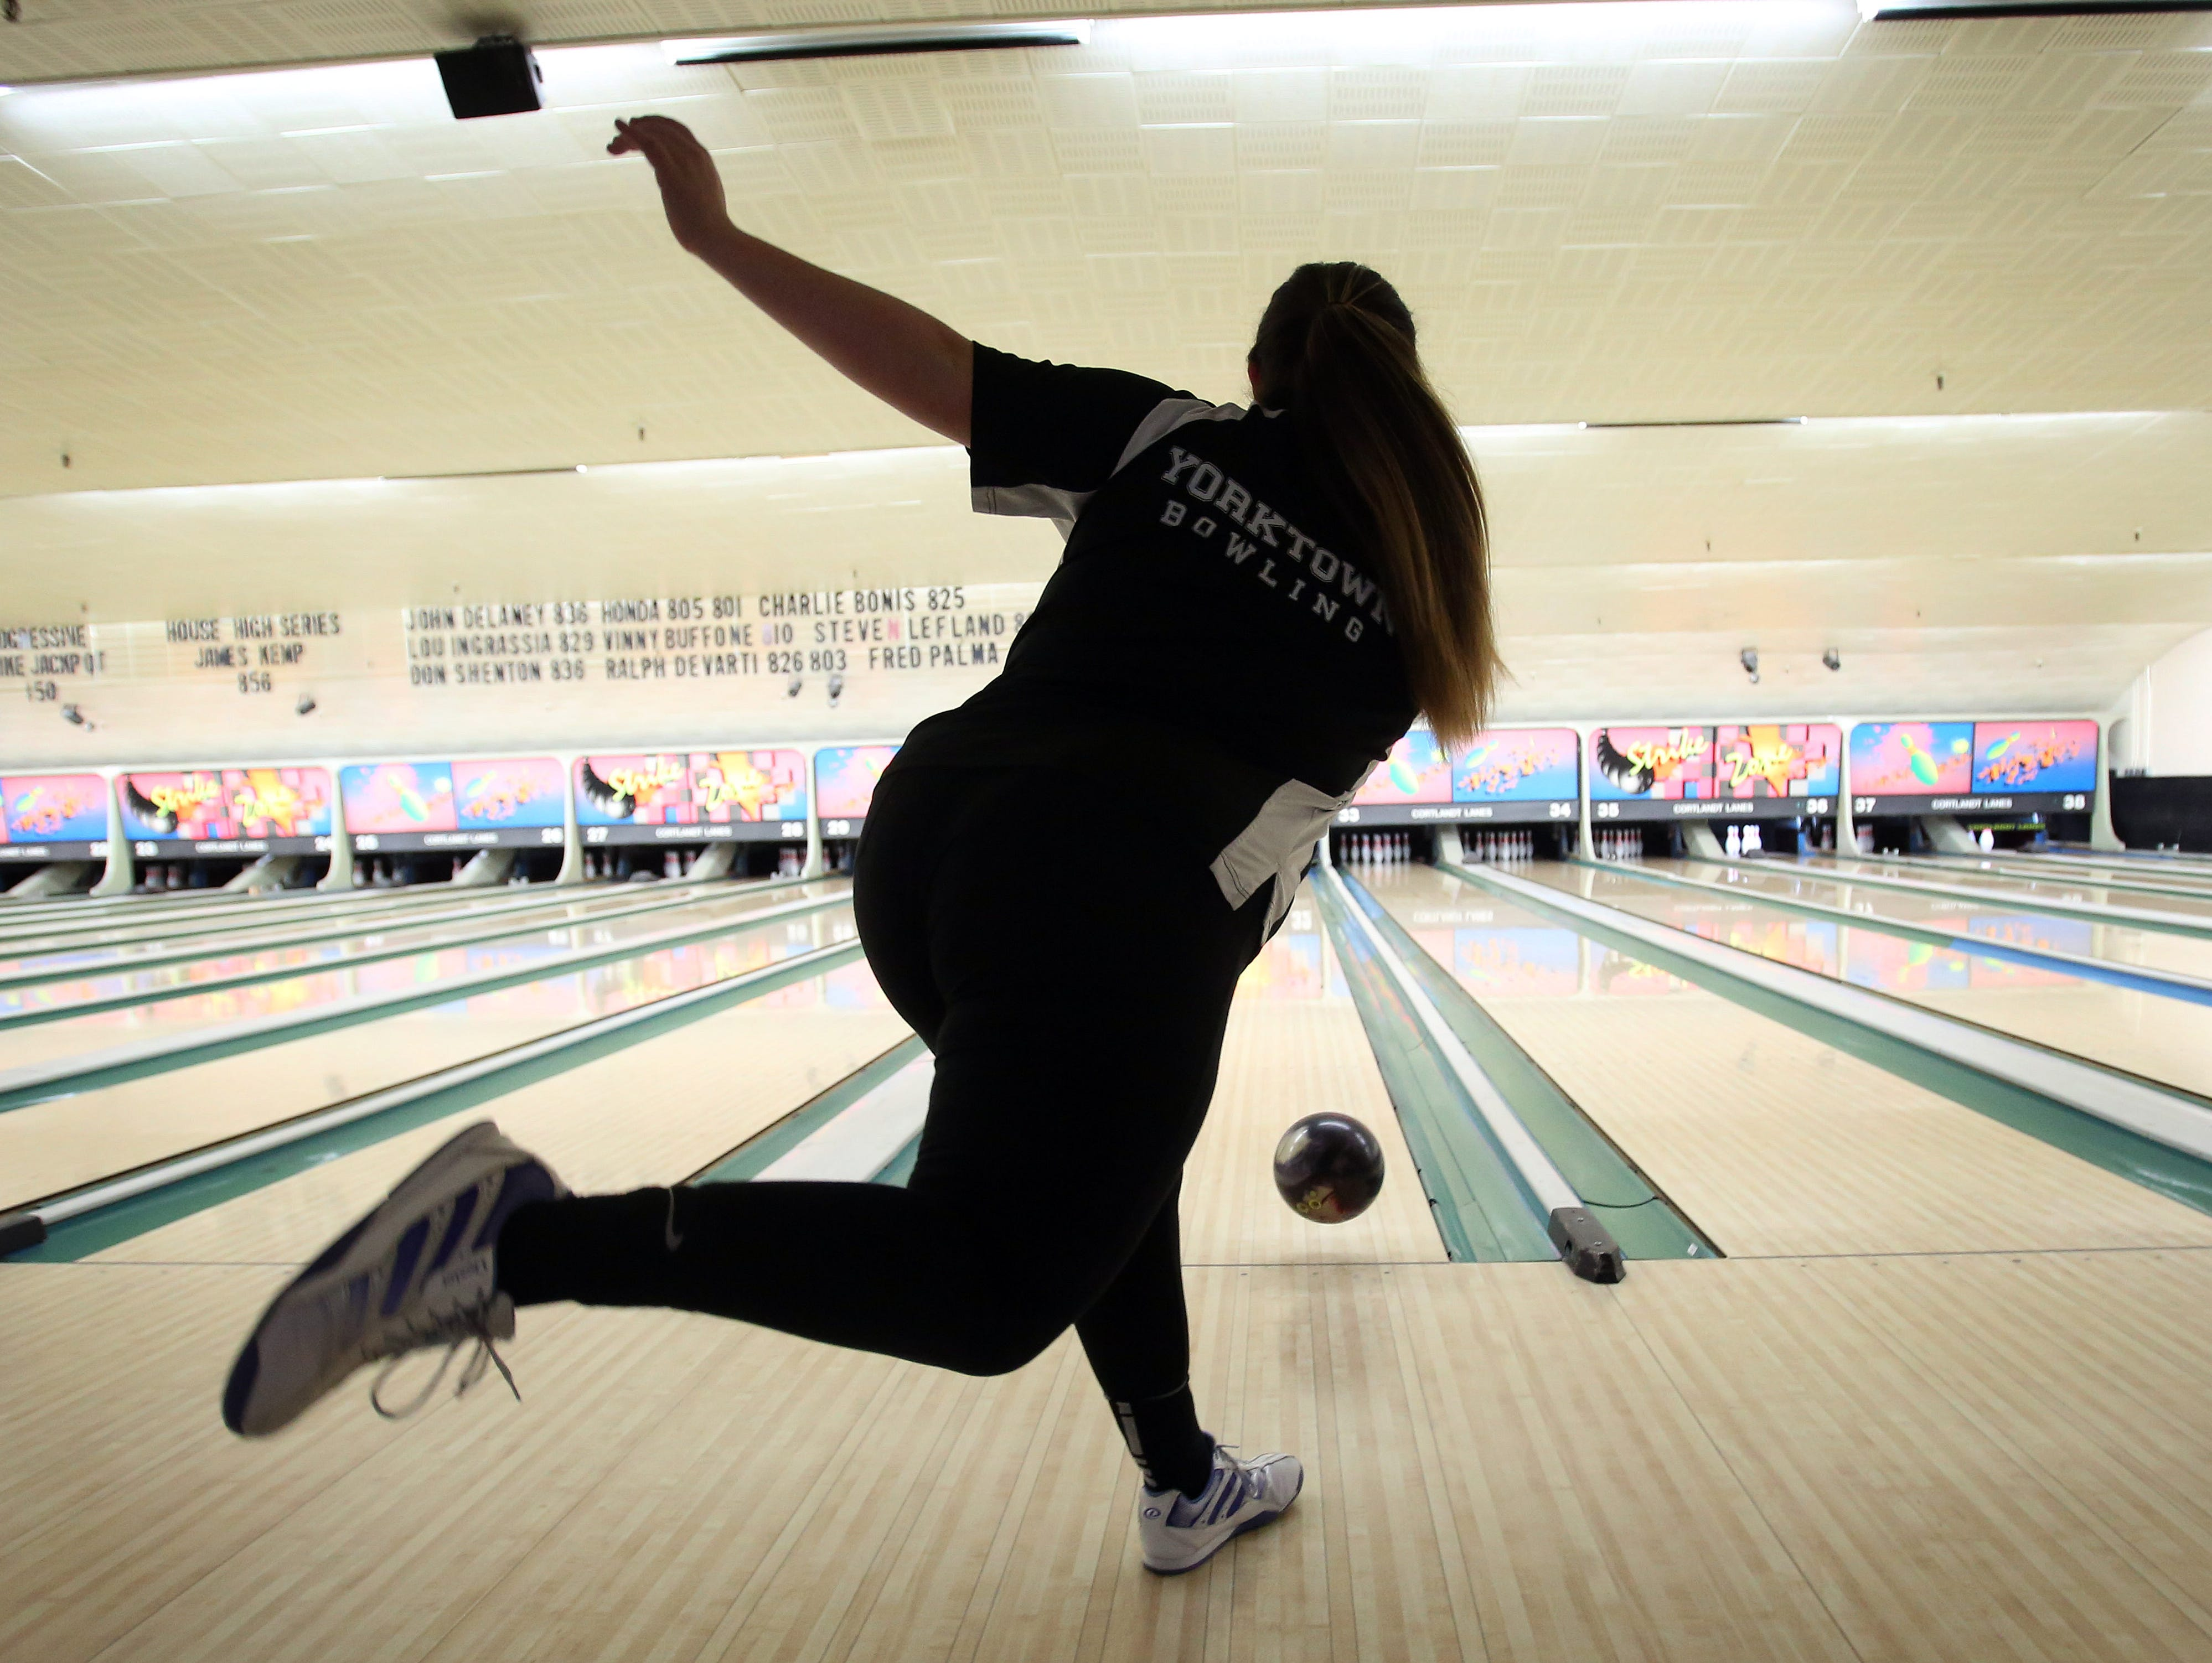 Yorktown's Gabby Branciforti is the bowler of the year. Branciforti was photographed at Cortlandt Lanes in Cortlandt Manor on March 30, 2016.